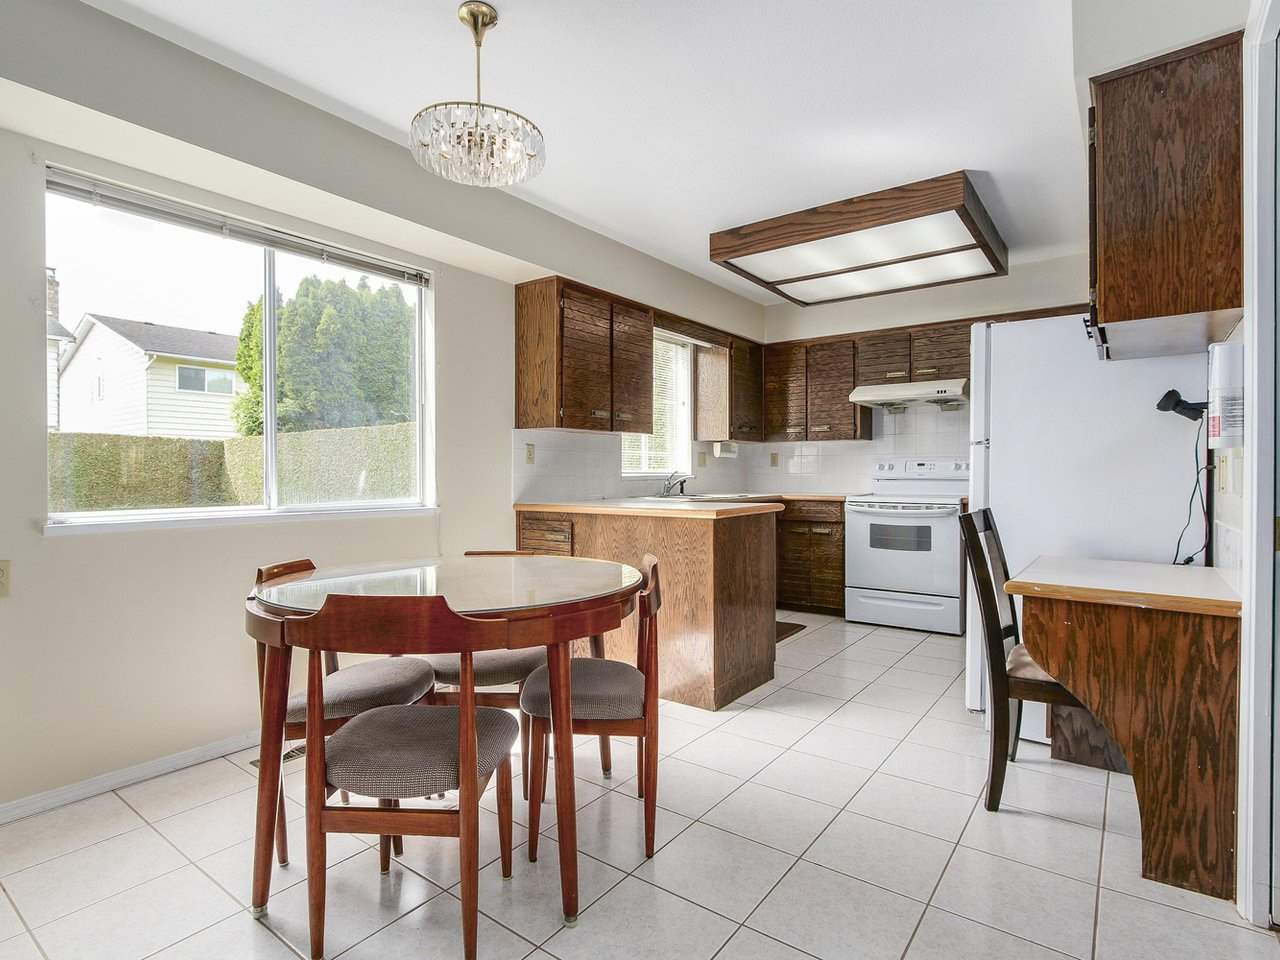 Photo 9: 10631 HOLLYBANK Drive in Richmond: Steveston North House for sale : MLS® # R2168914